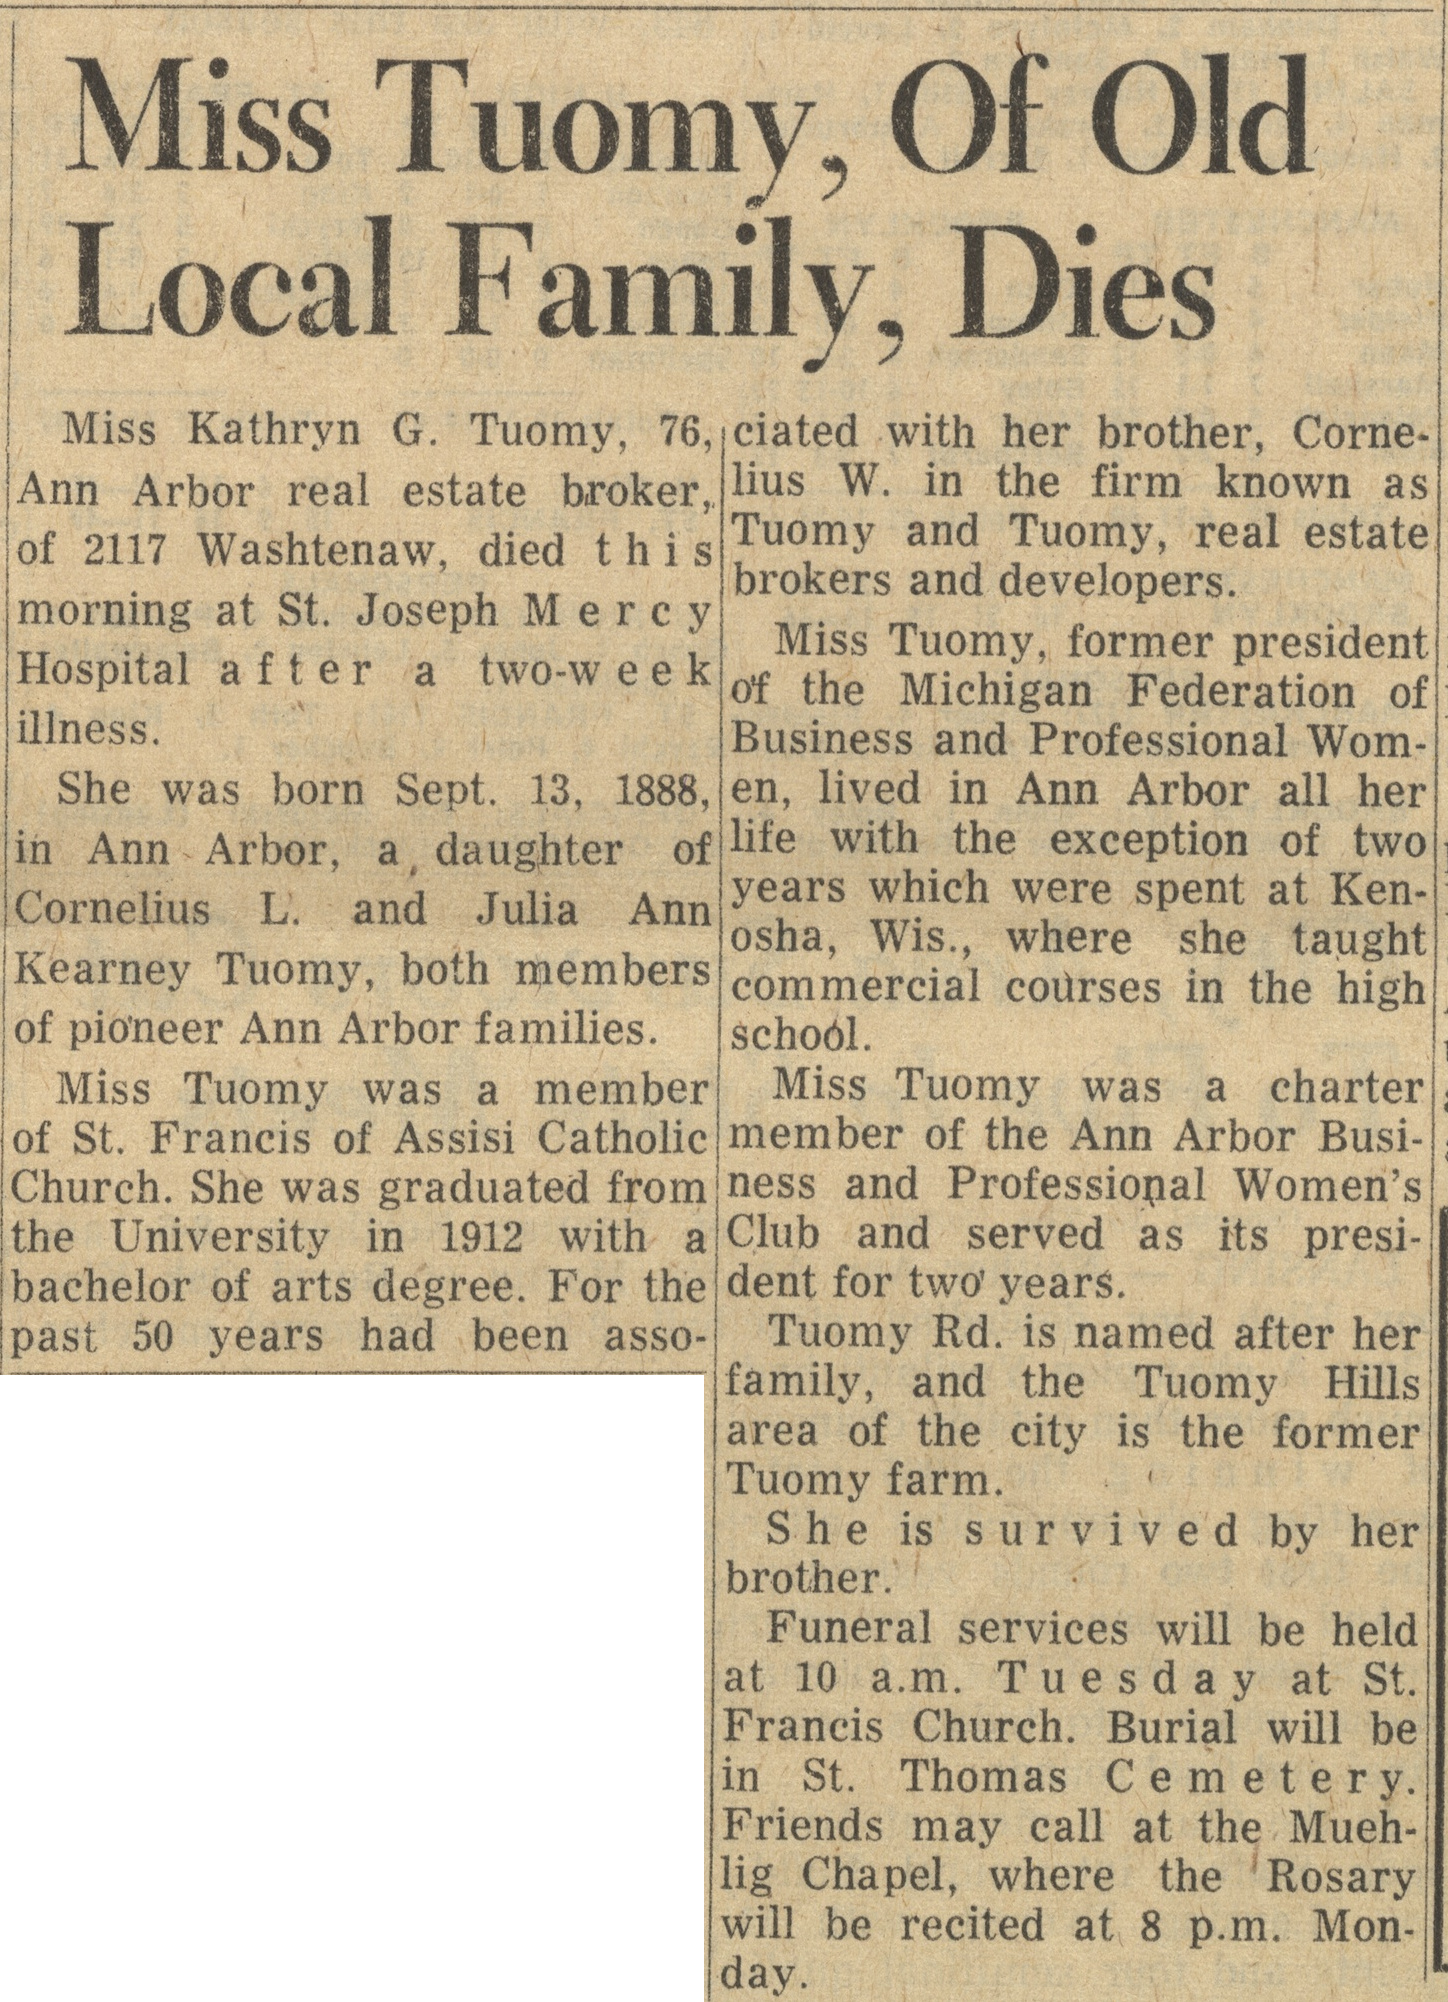 Miss Tuomy, Of Old Local Family, Dies image